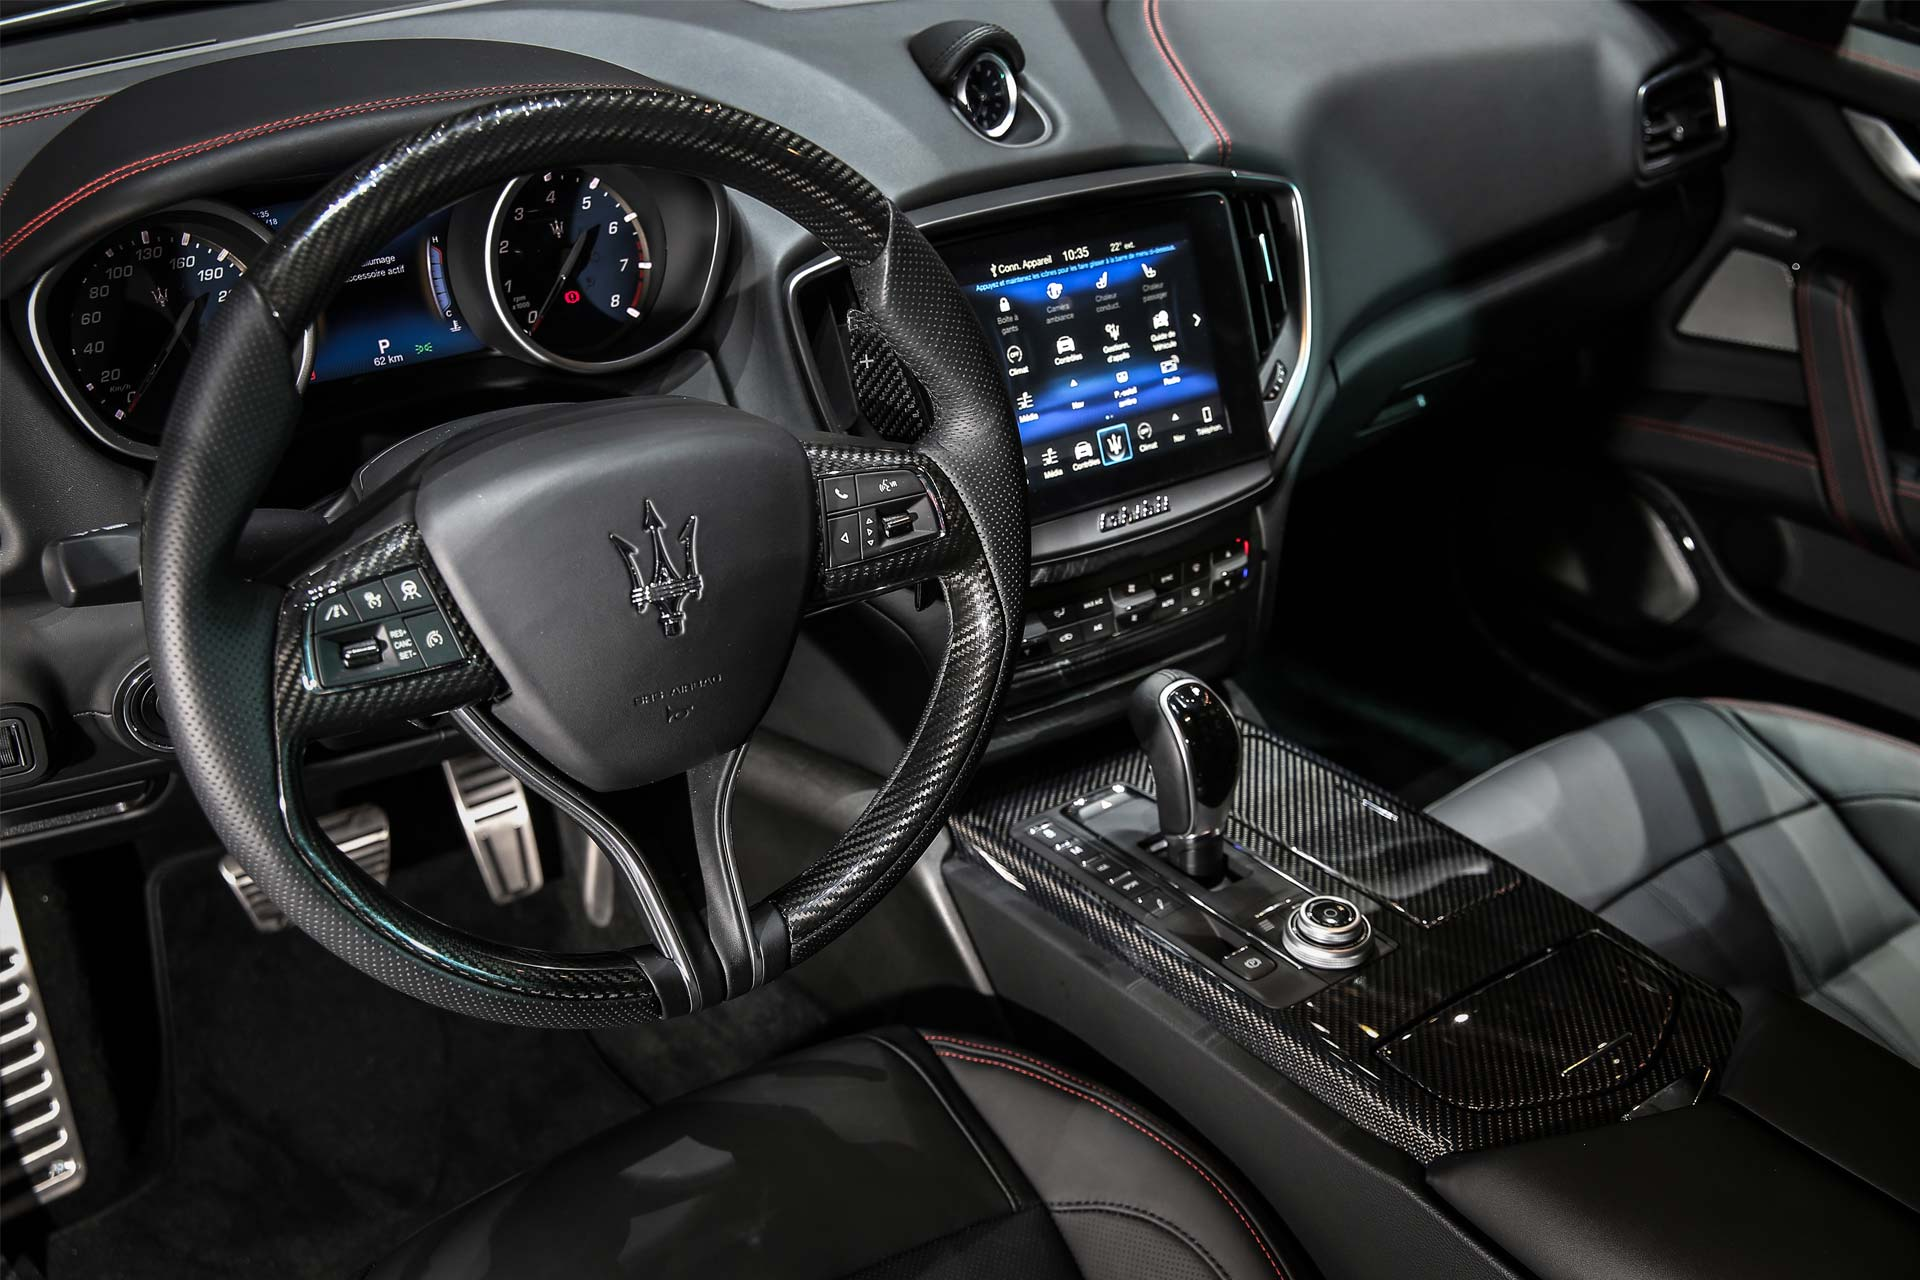 2018 Maserati Ghibli launched at Rs 1.33 Crore - Autodevot